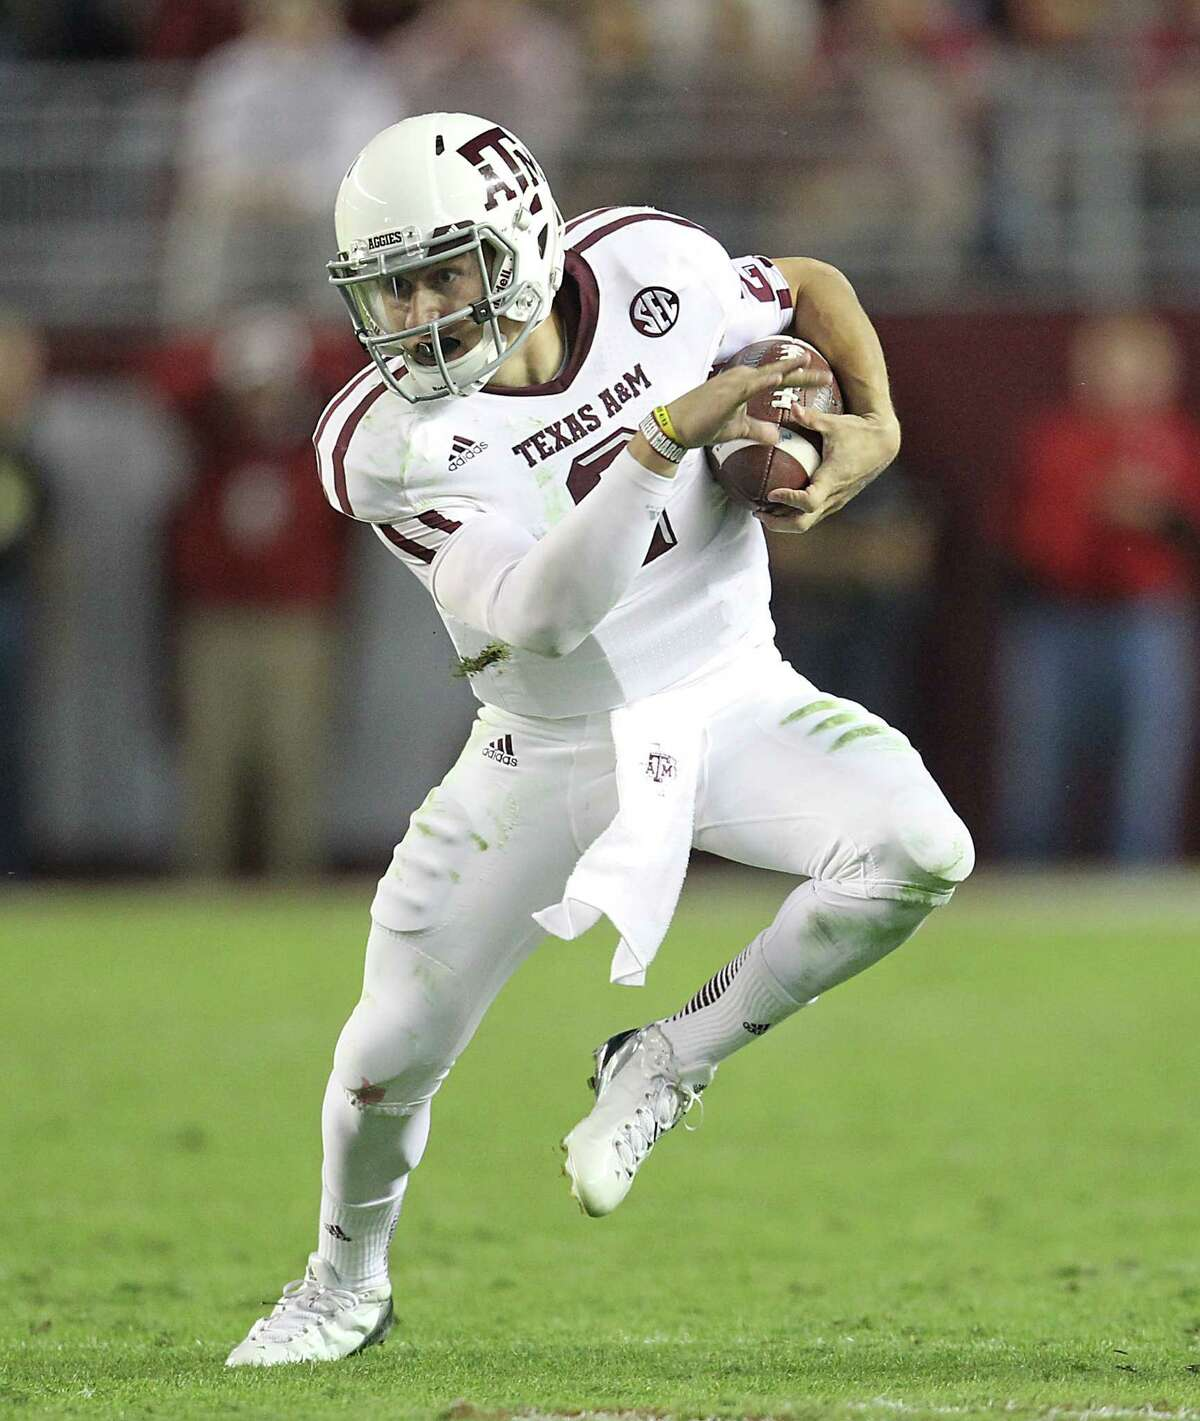 Just a freshman, Texas A&M quarterback Johnny Manziel has twice broken the SEC record for total yards in a game.